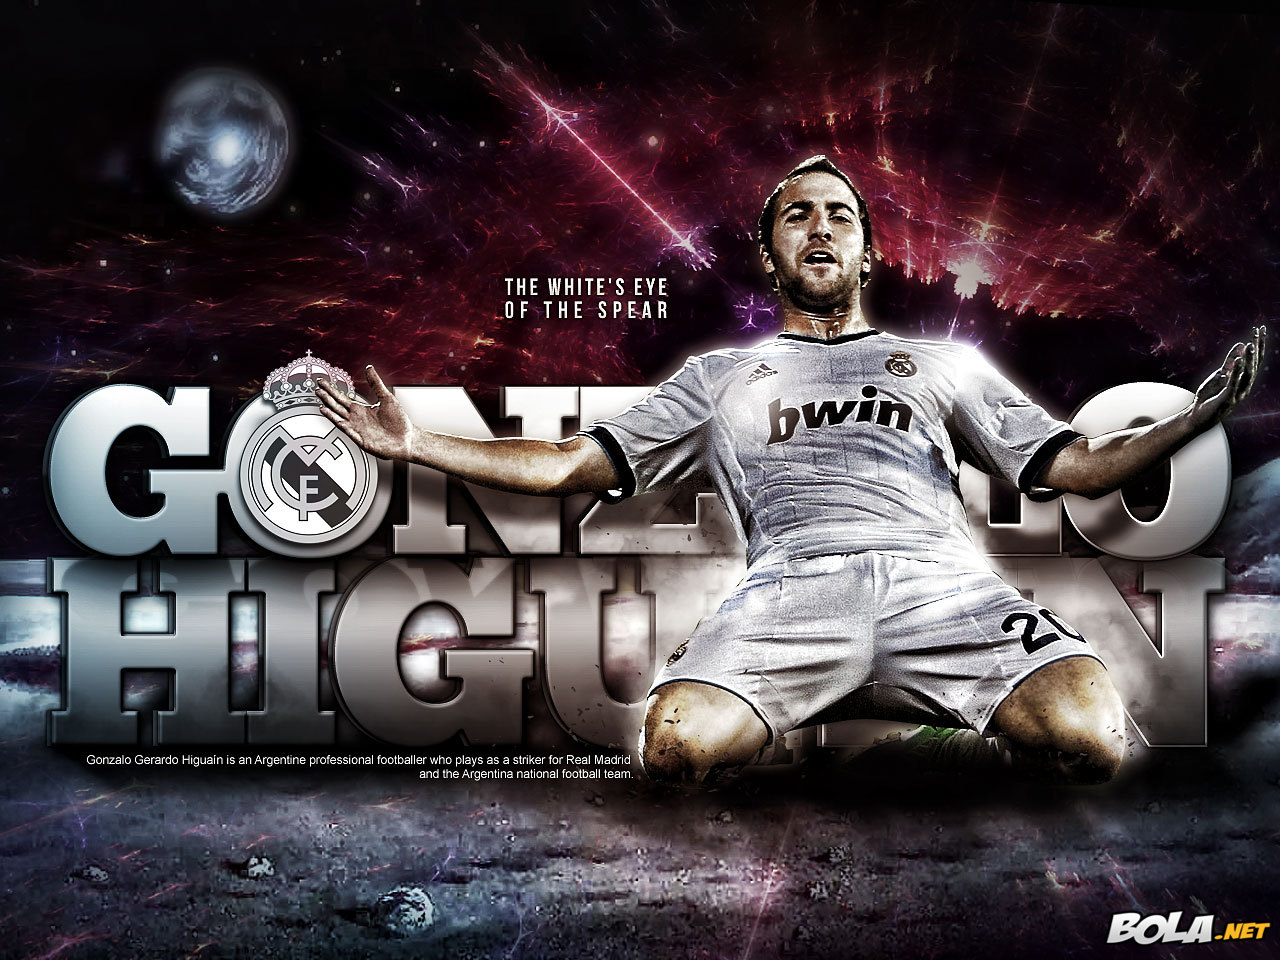 Gonzalo-Higuain-Los-Galacticos-Best-HD-wallpaper-wp5207058